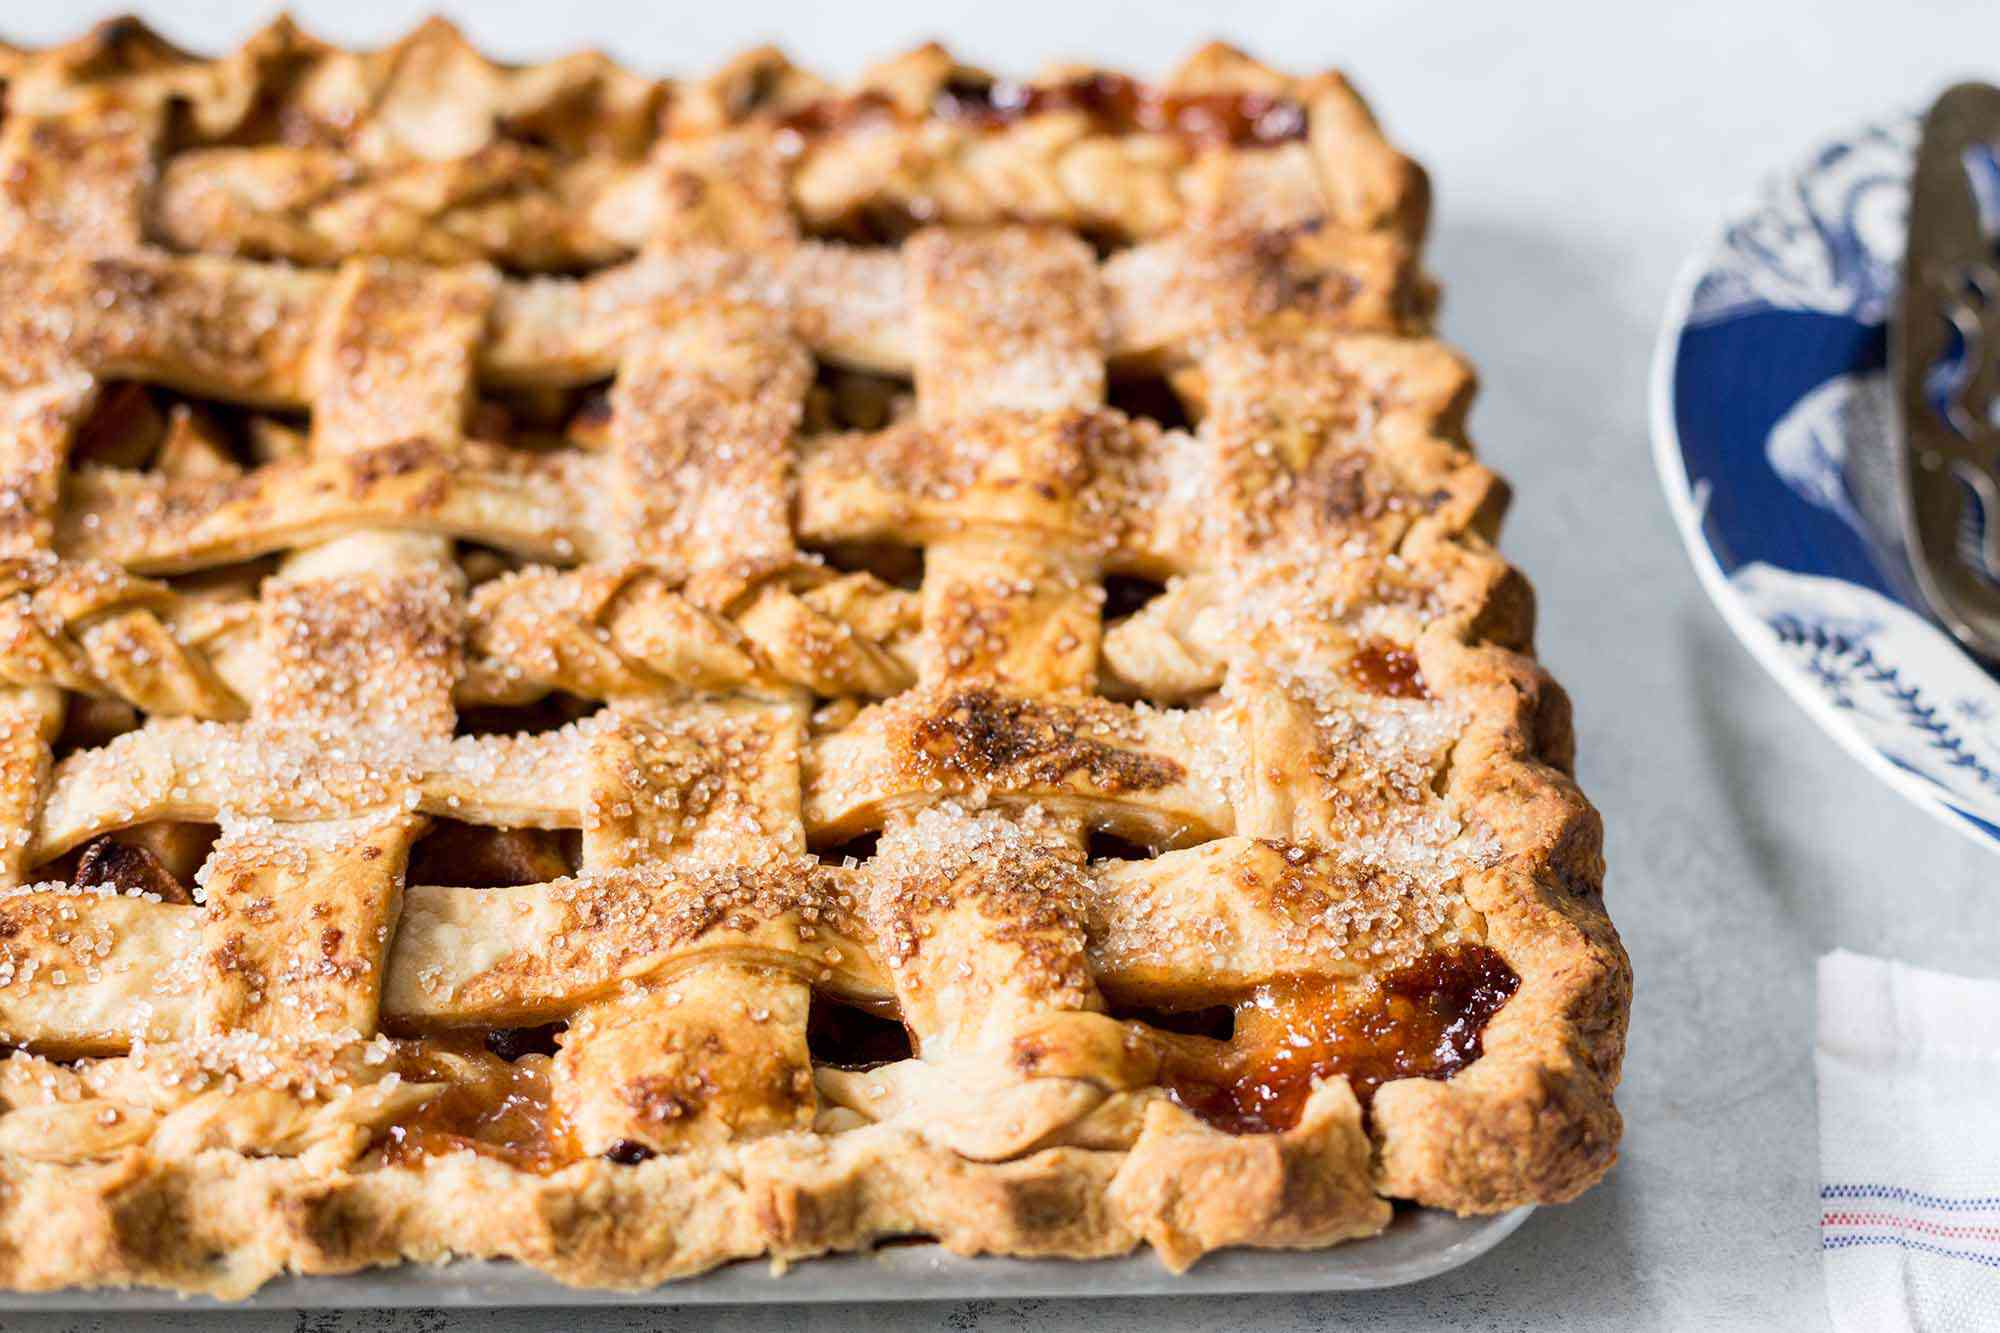 How to make an Apple Slab Pie